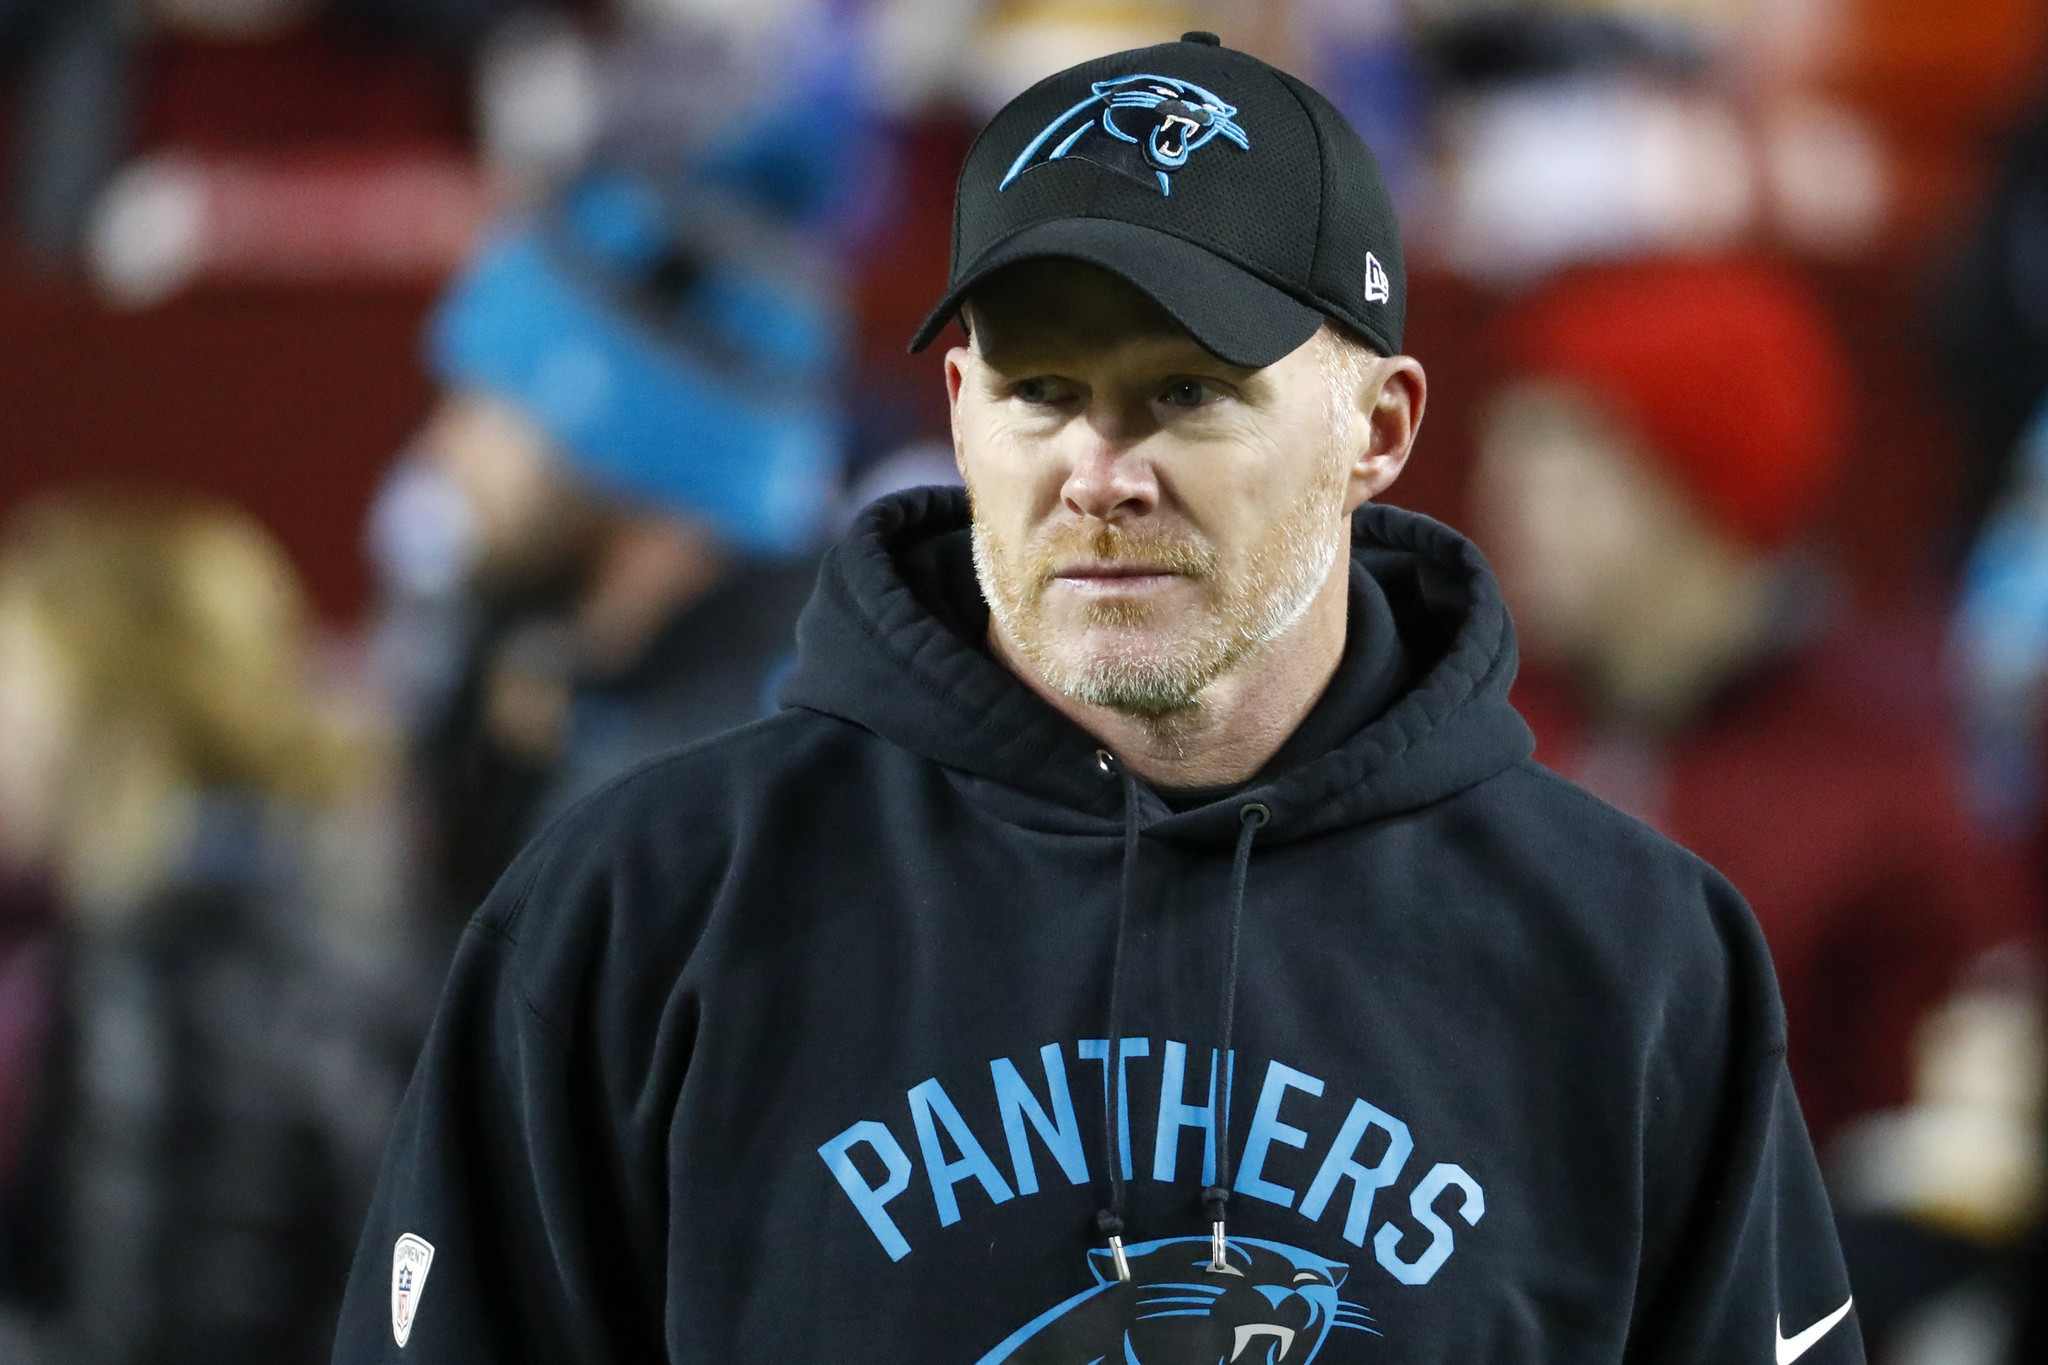 Buffalo Bills hire Sean McDermott as coach